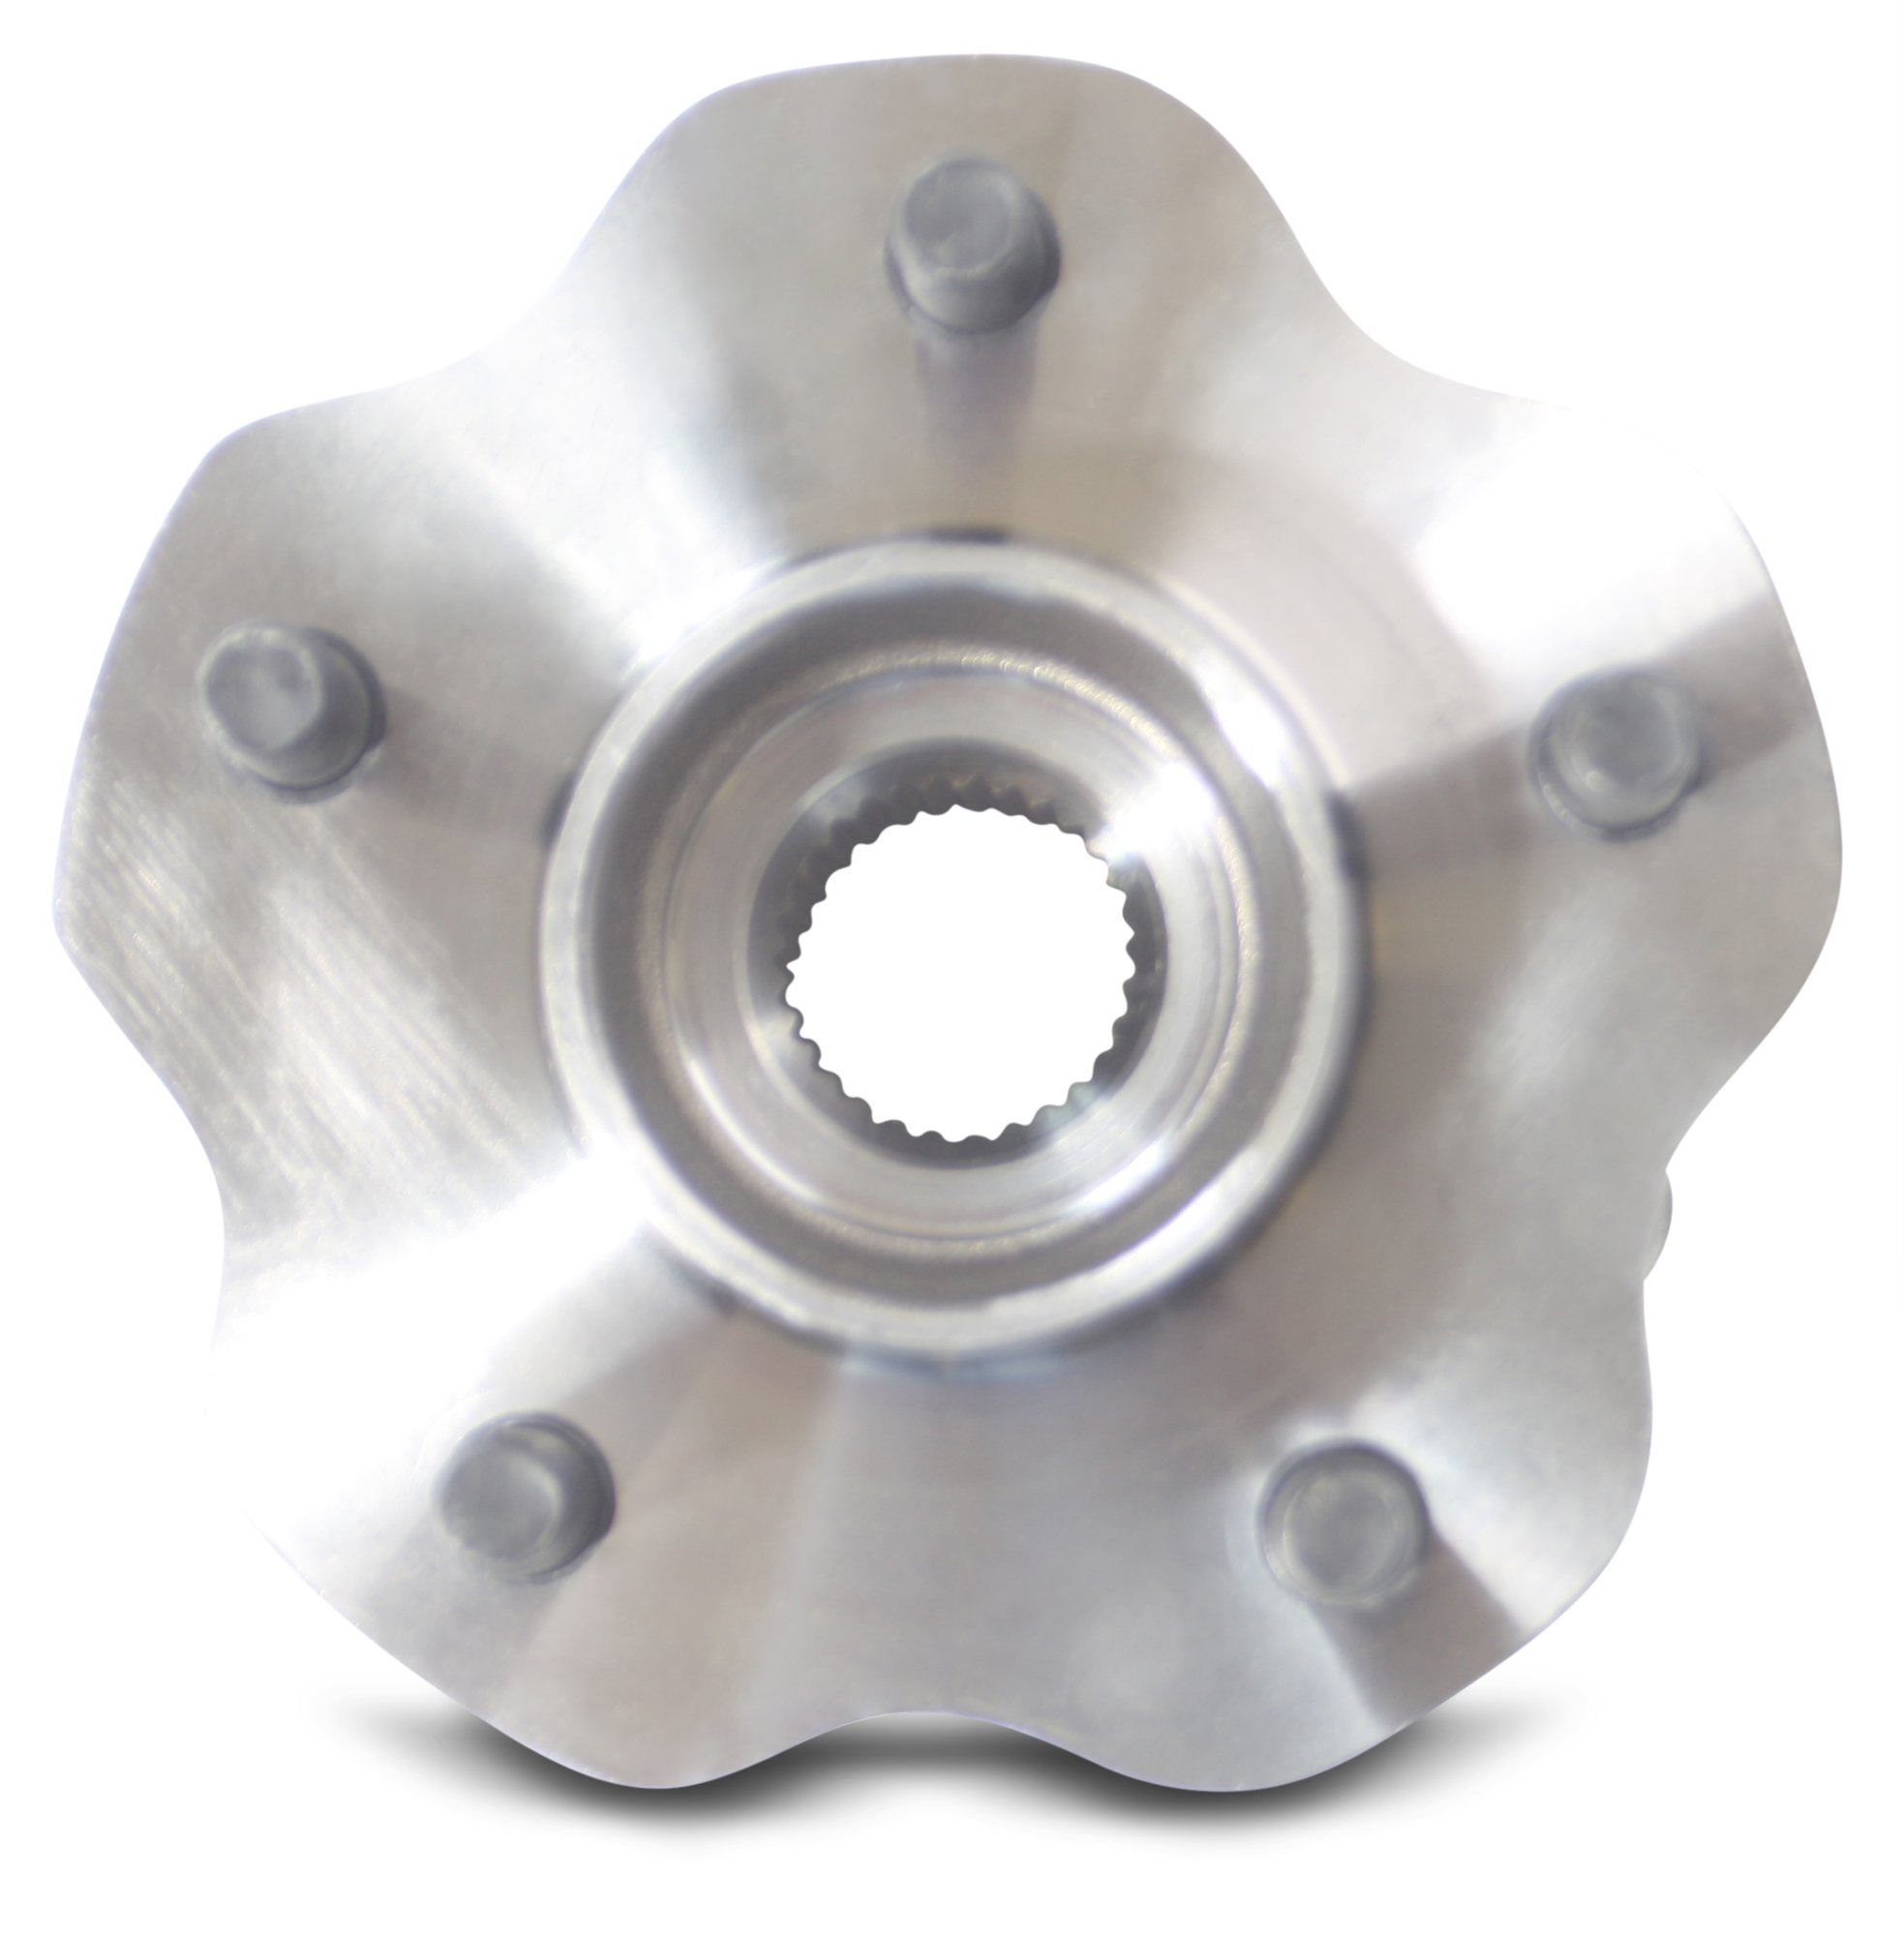 Tomegun 4 to 5 Lug Wheel Bearing Conversion Hub Rear Pair For 89-99 S13/S14 Nissan 240SX by Tomegun (Image #2)